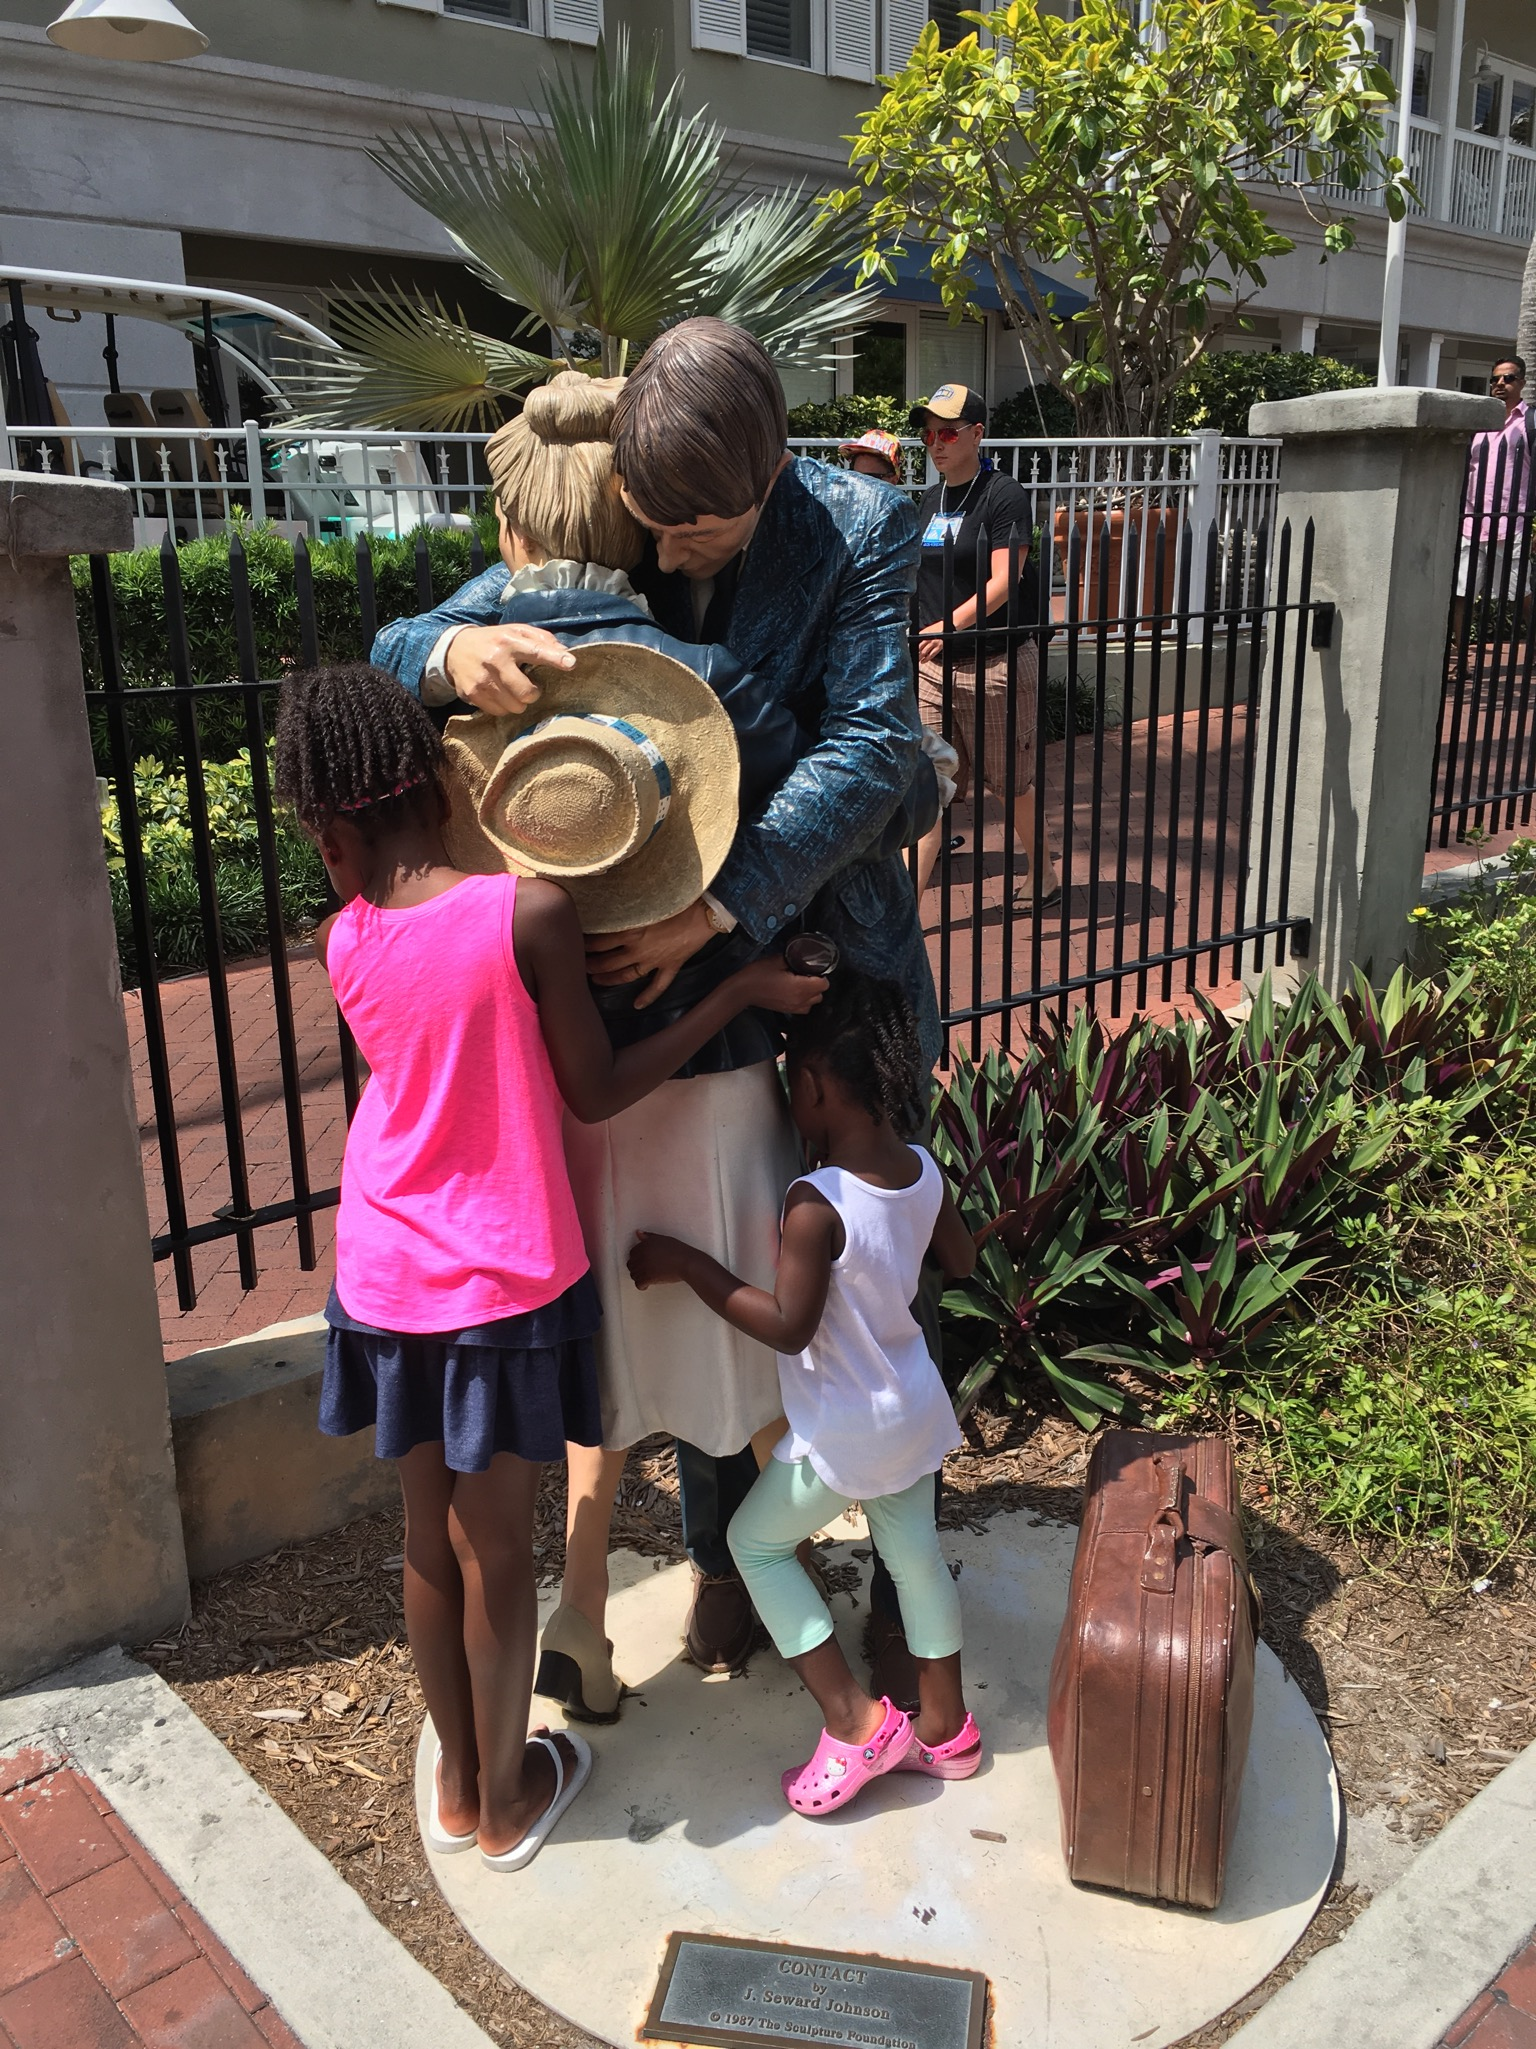 The girls went around hugging and holding conversations with the statues on property. It was fun to watch and entertaining for me as the parent!